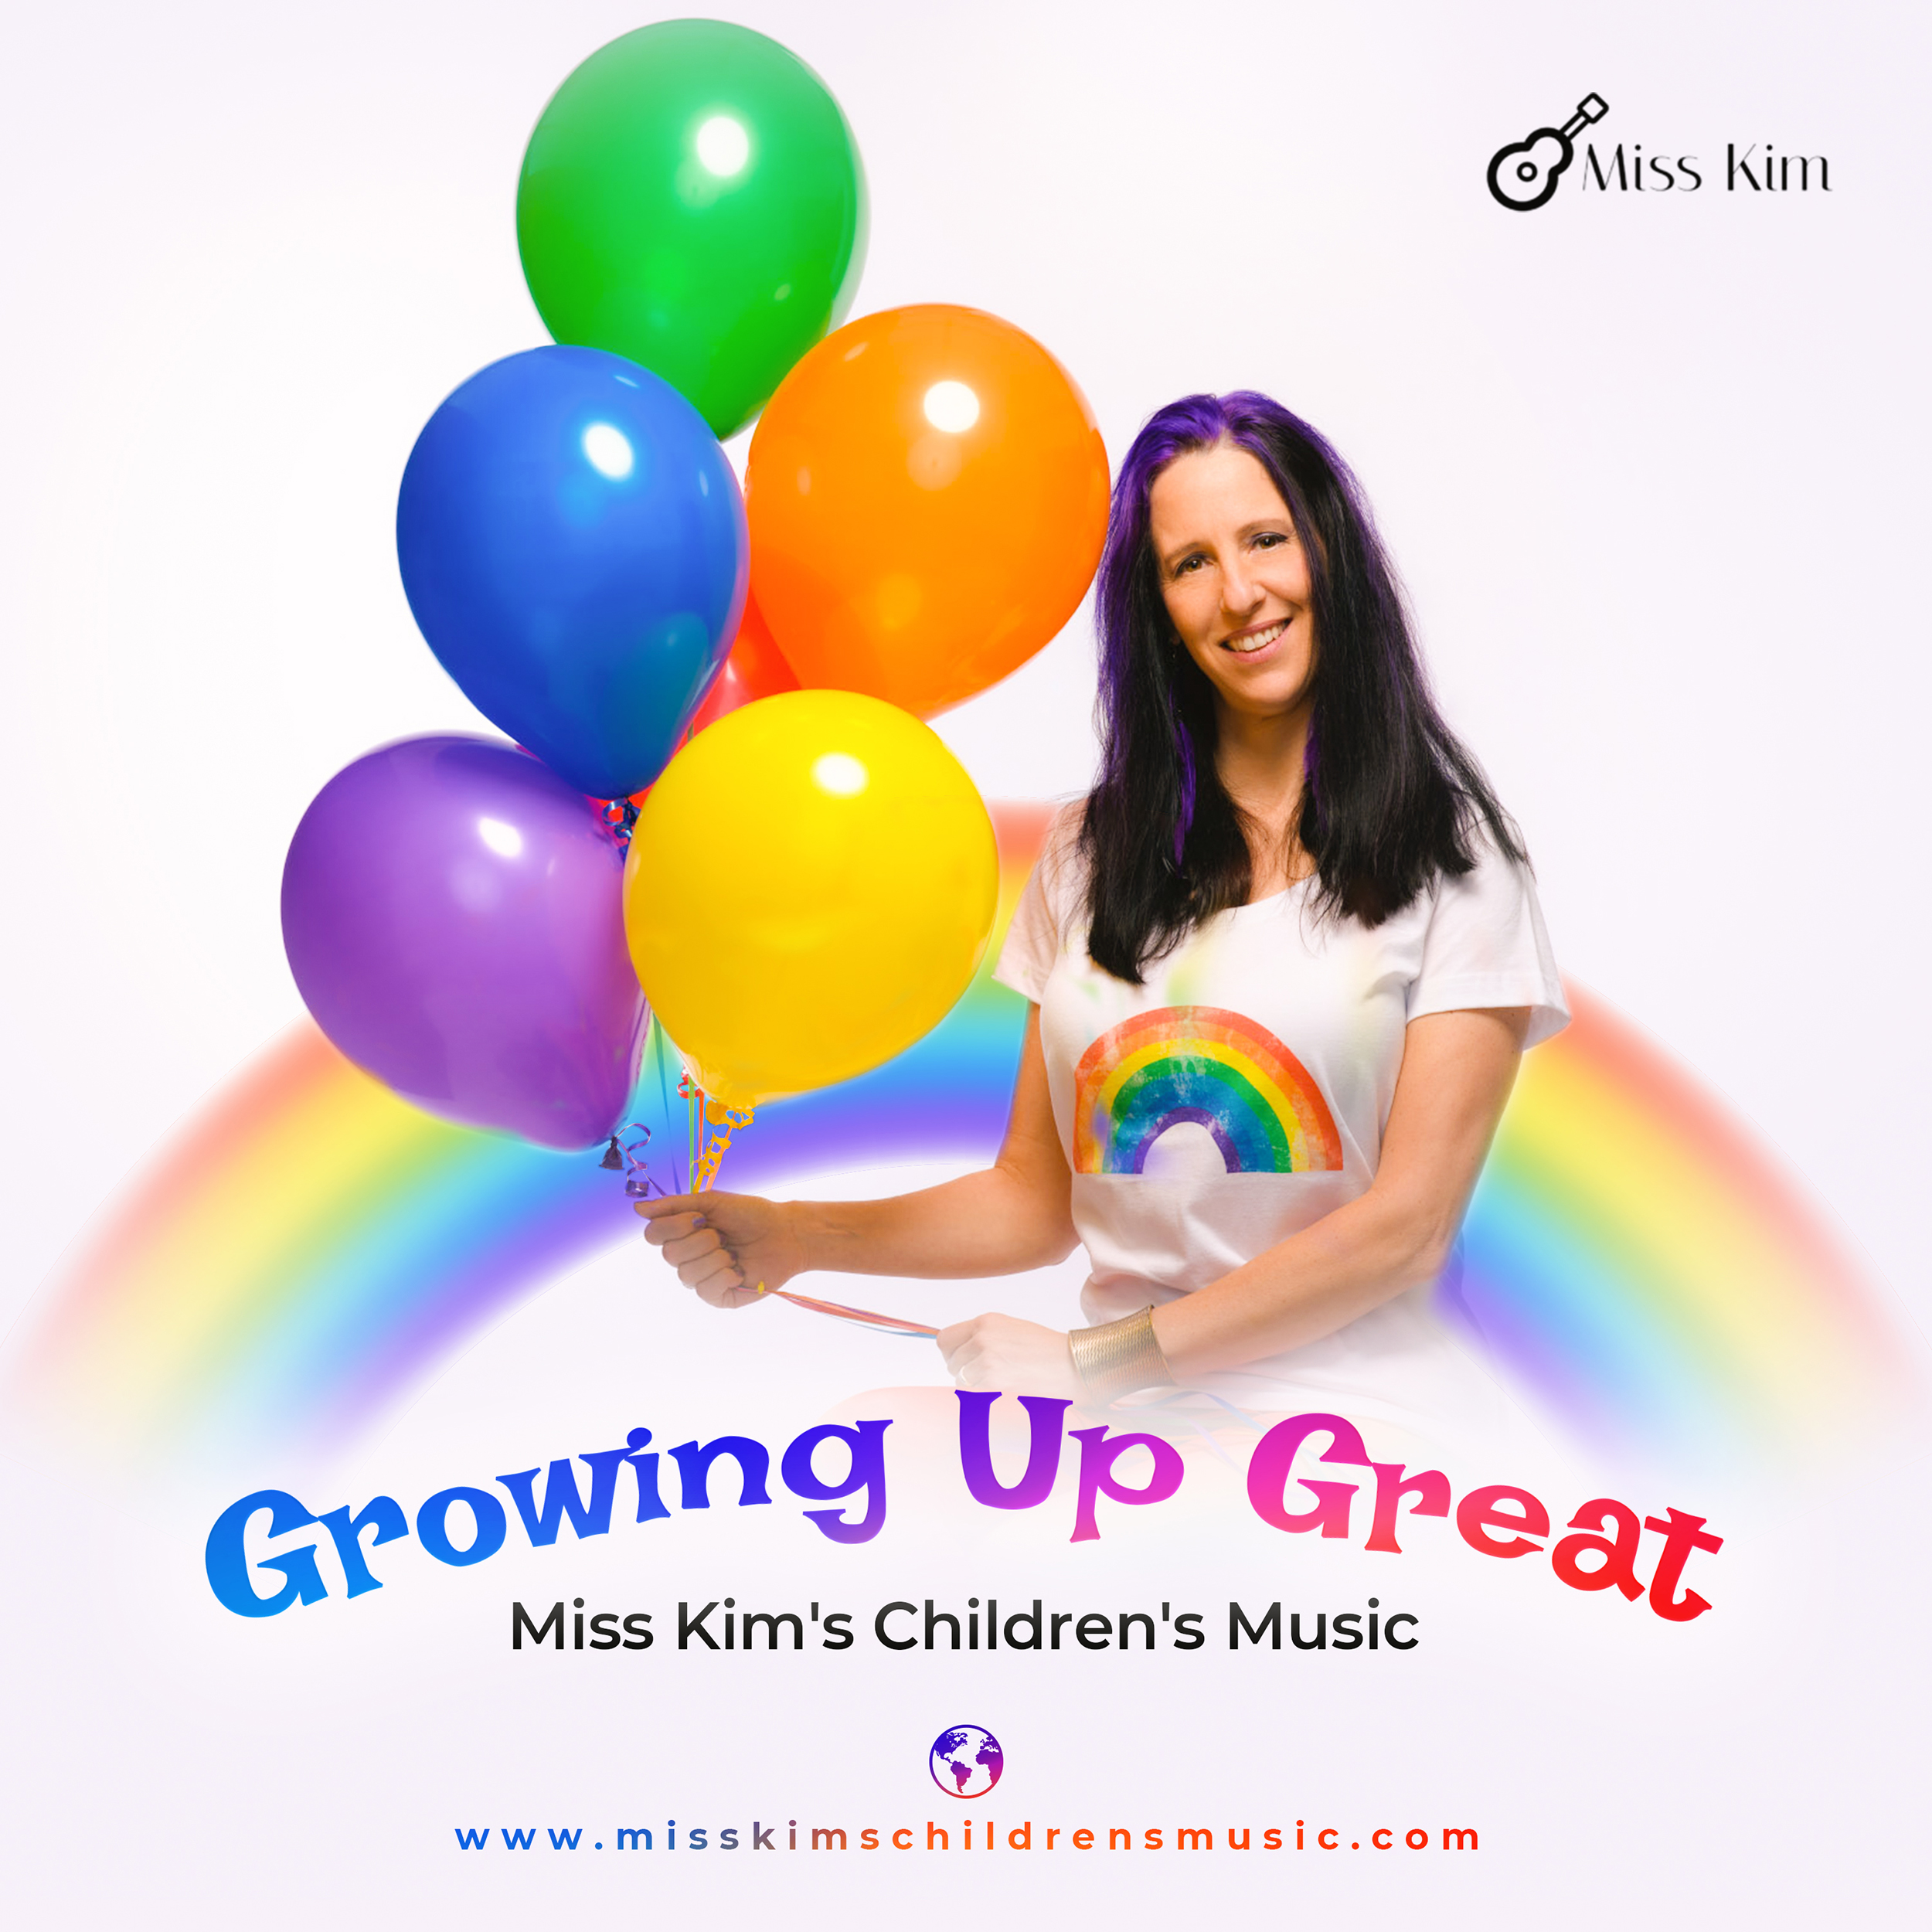 Growing Up Great